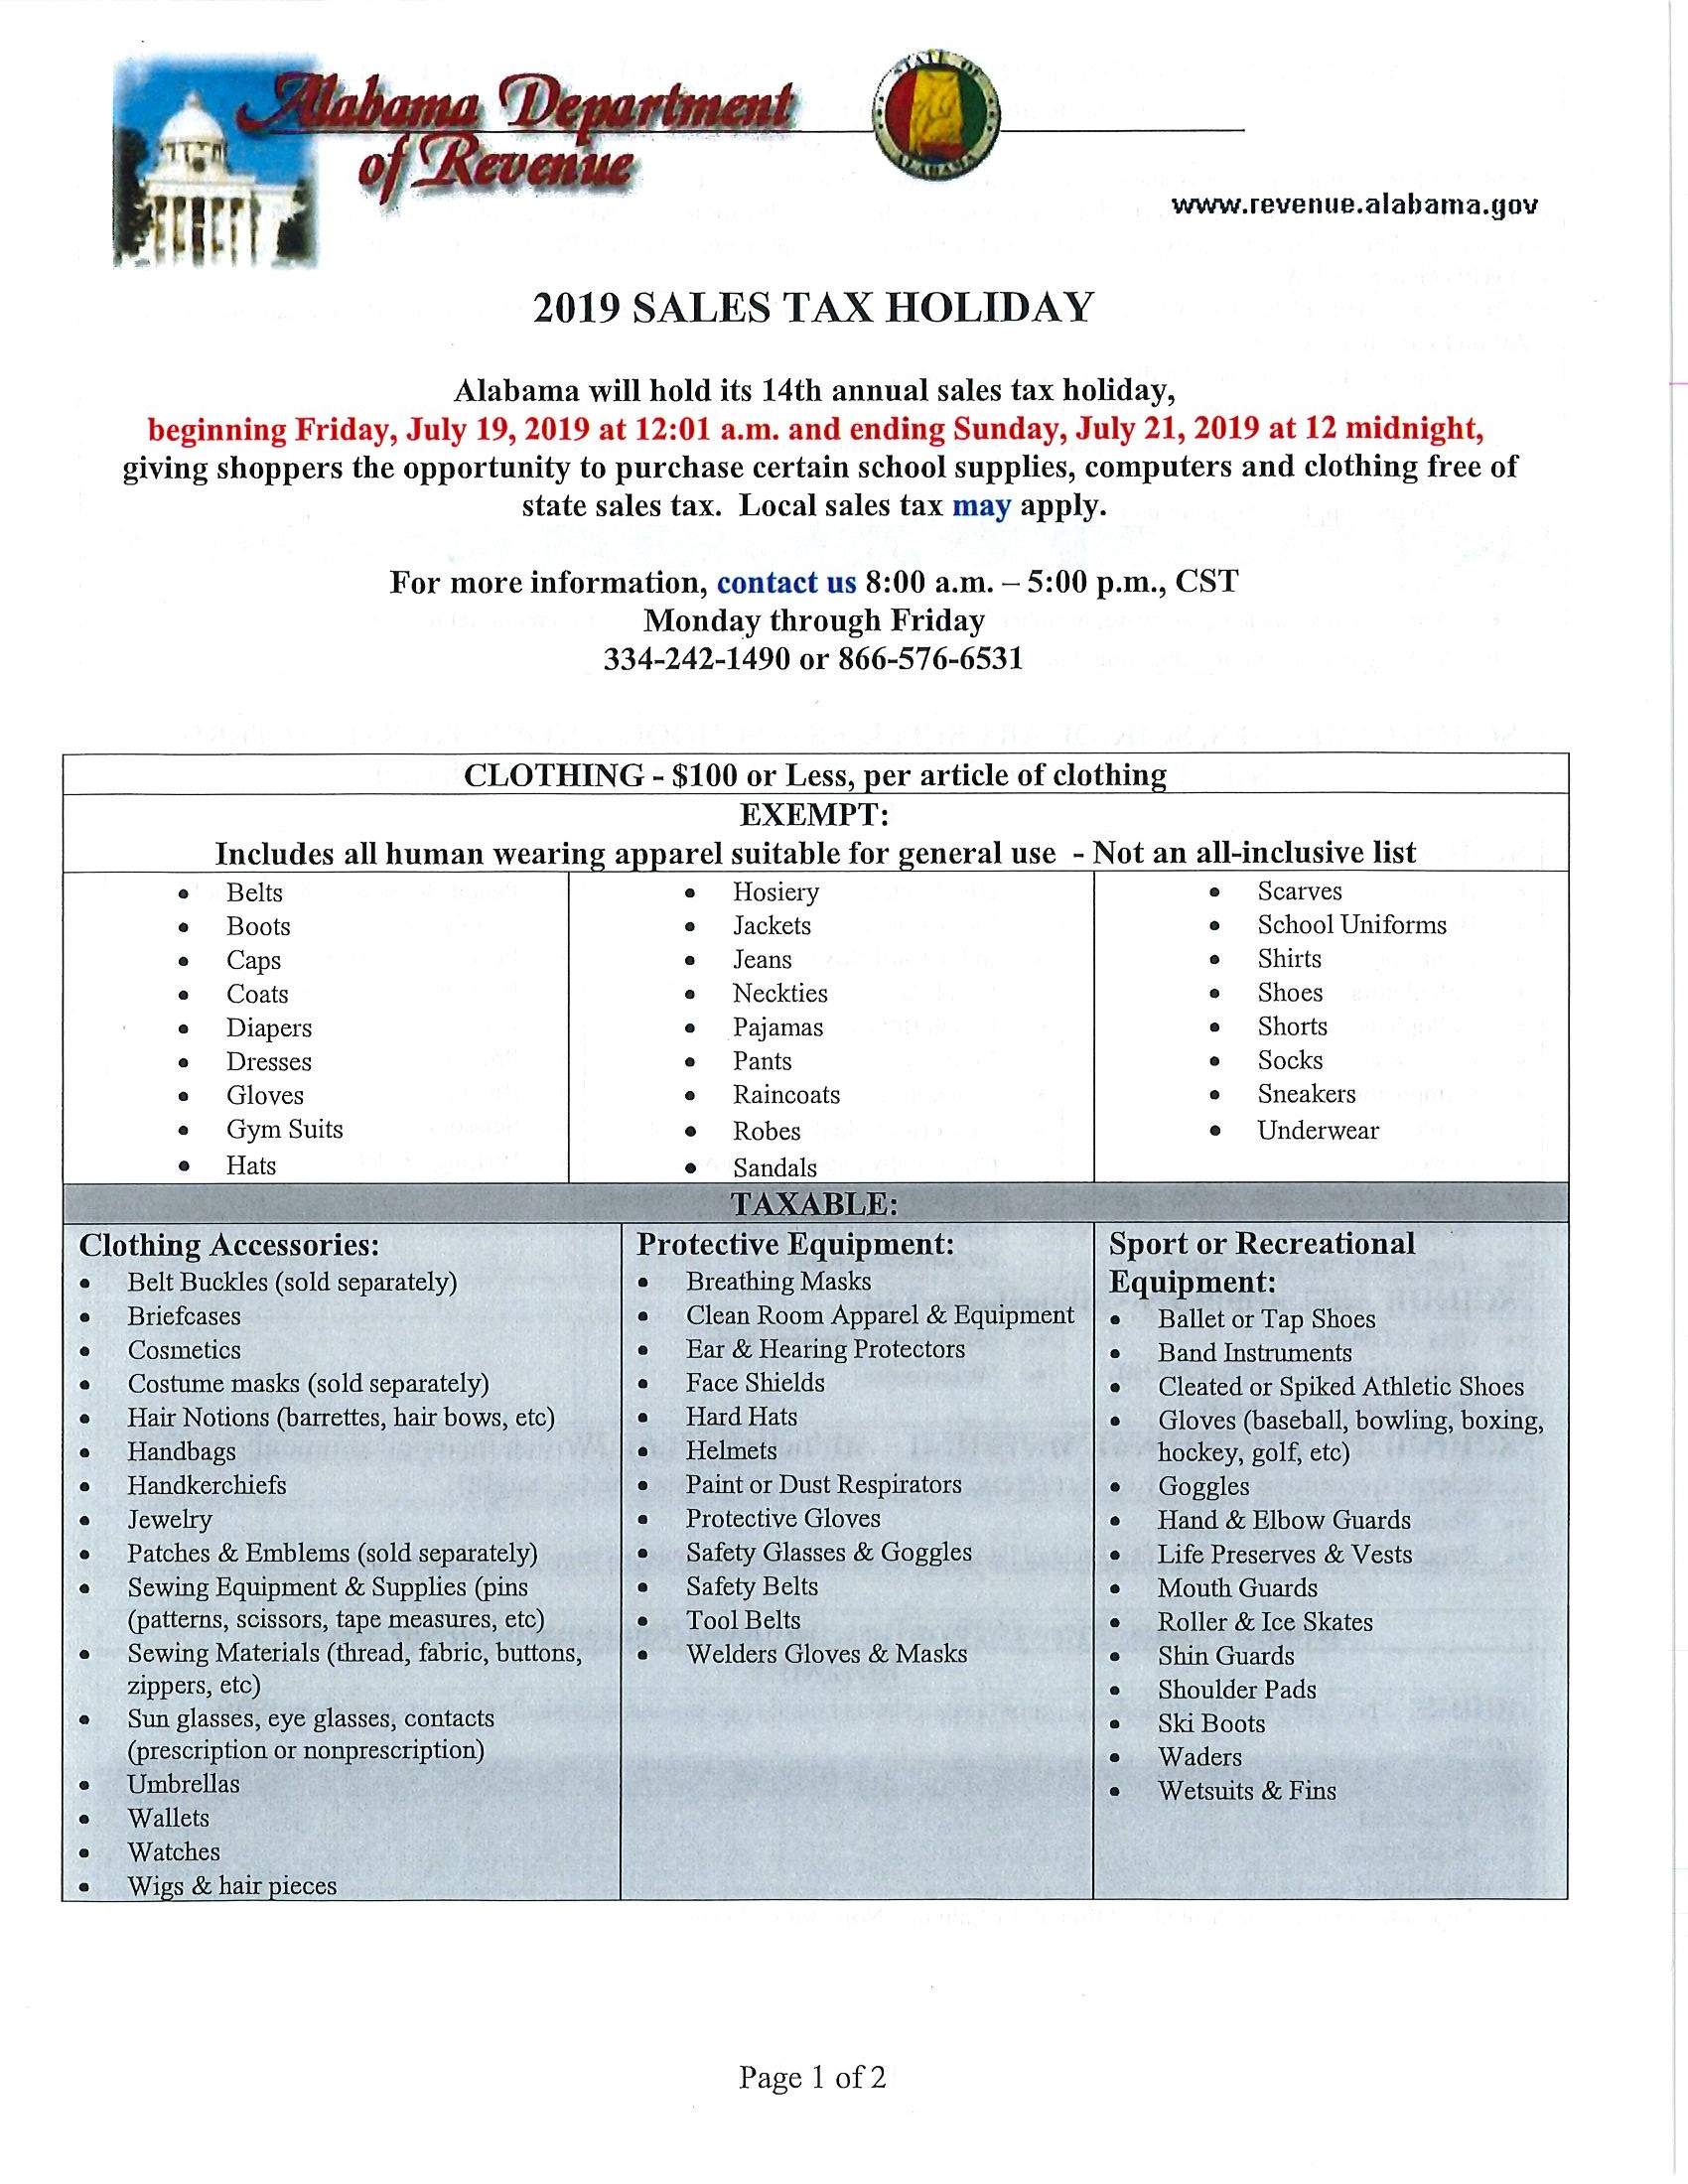 AL Sales Tax Holiday_Page_2.jpg